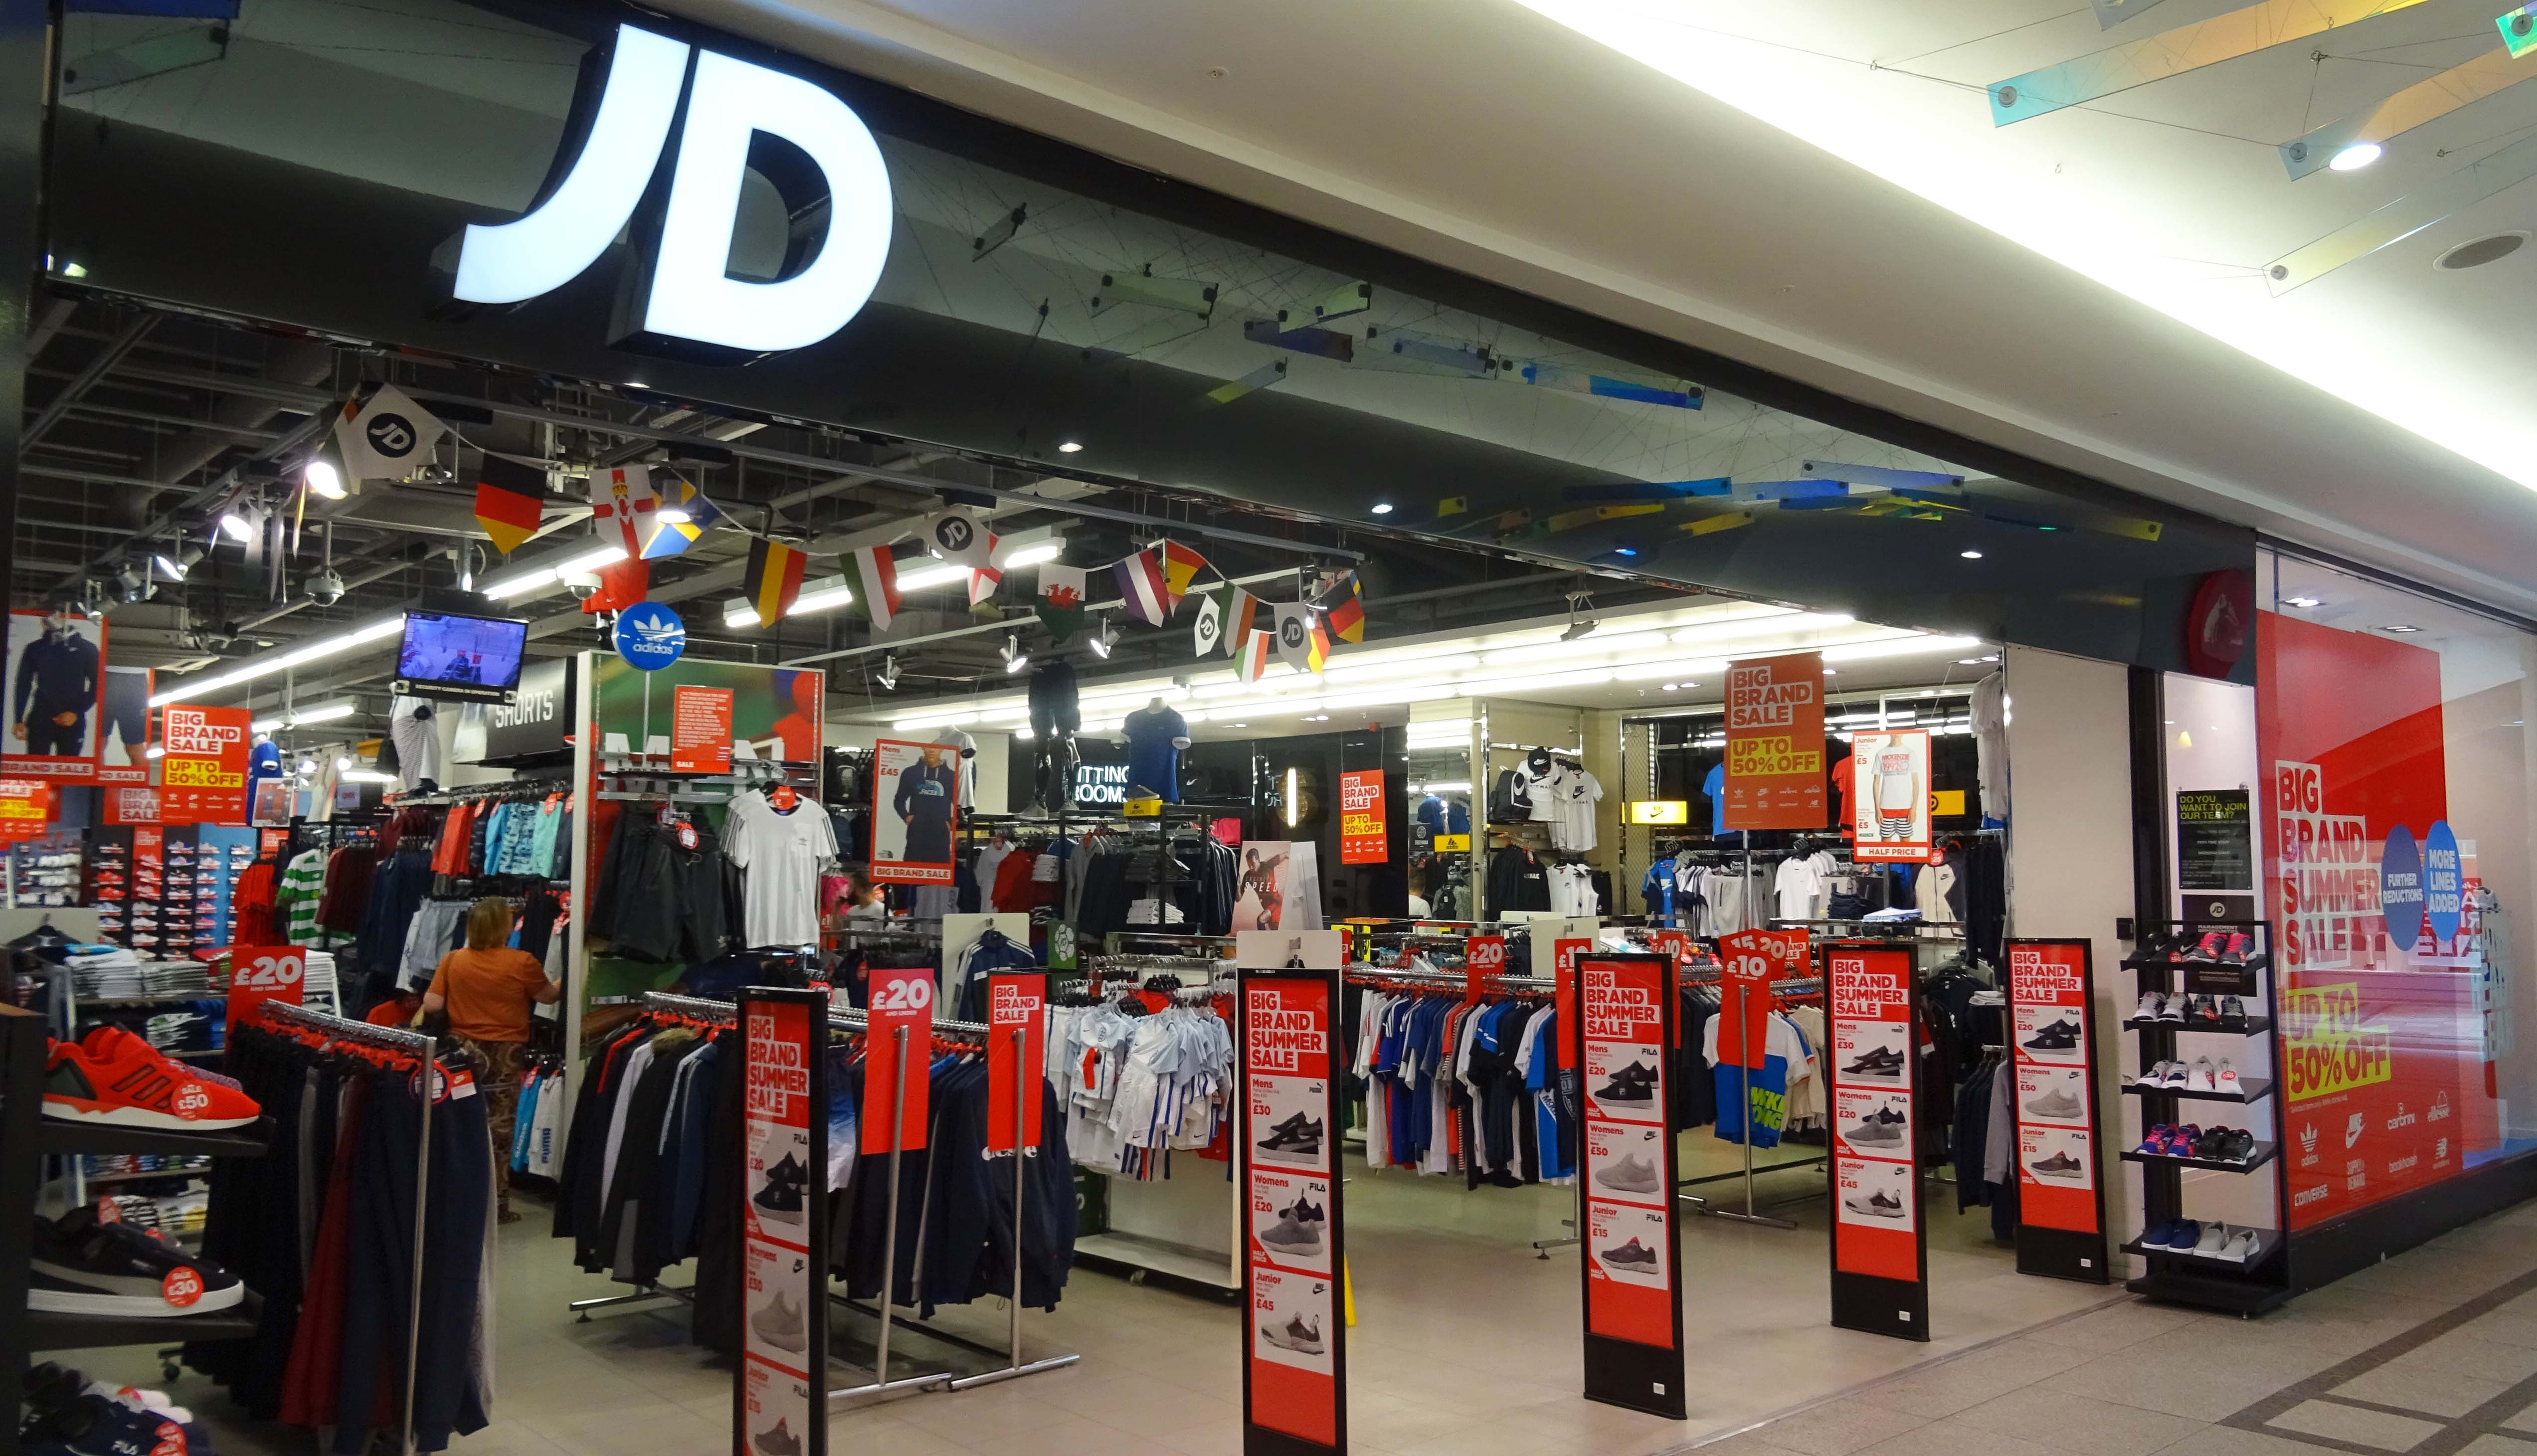 Jd Sports Jd Sports The Lanes Shopping Centre